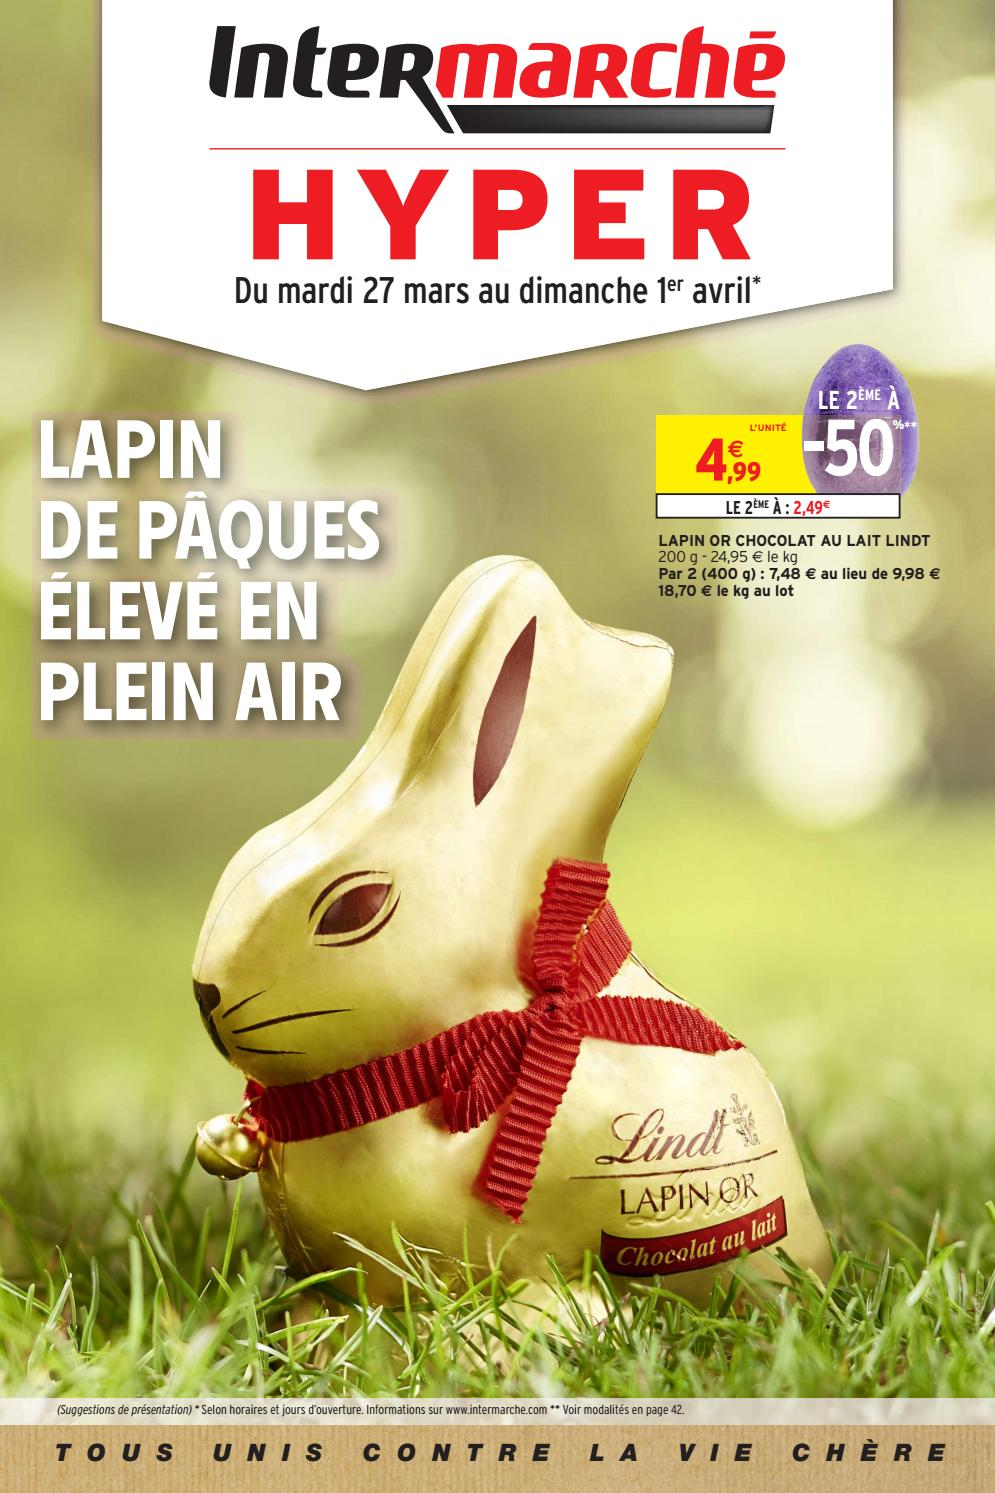 Chauffeuse Intermarché Catalogue Intermarché Hyper Du 27 Mars Au 1er Avril 2018